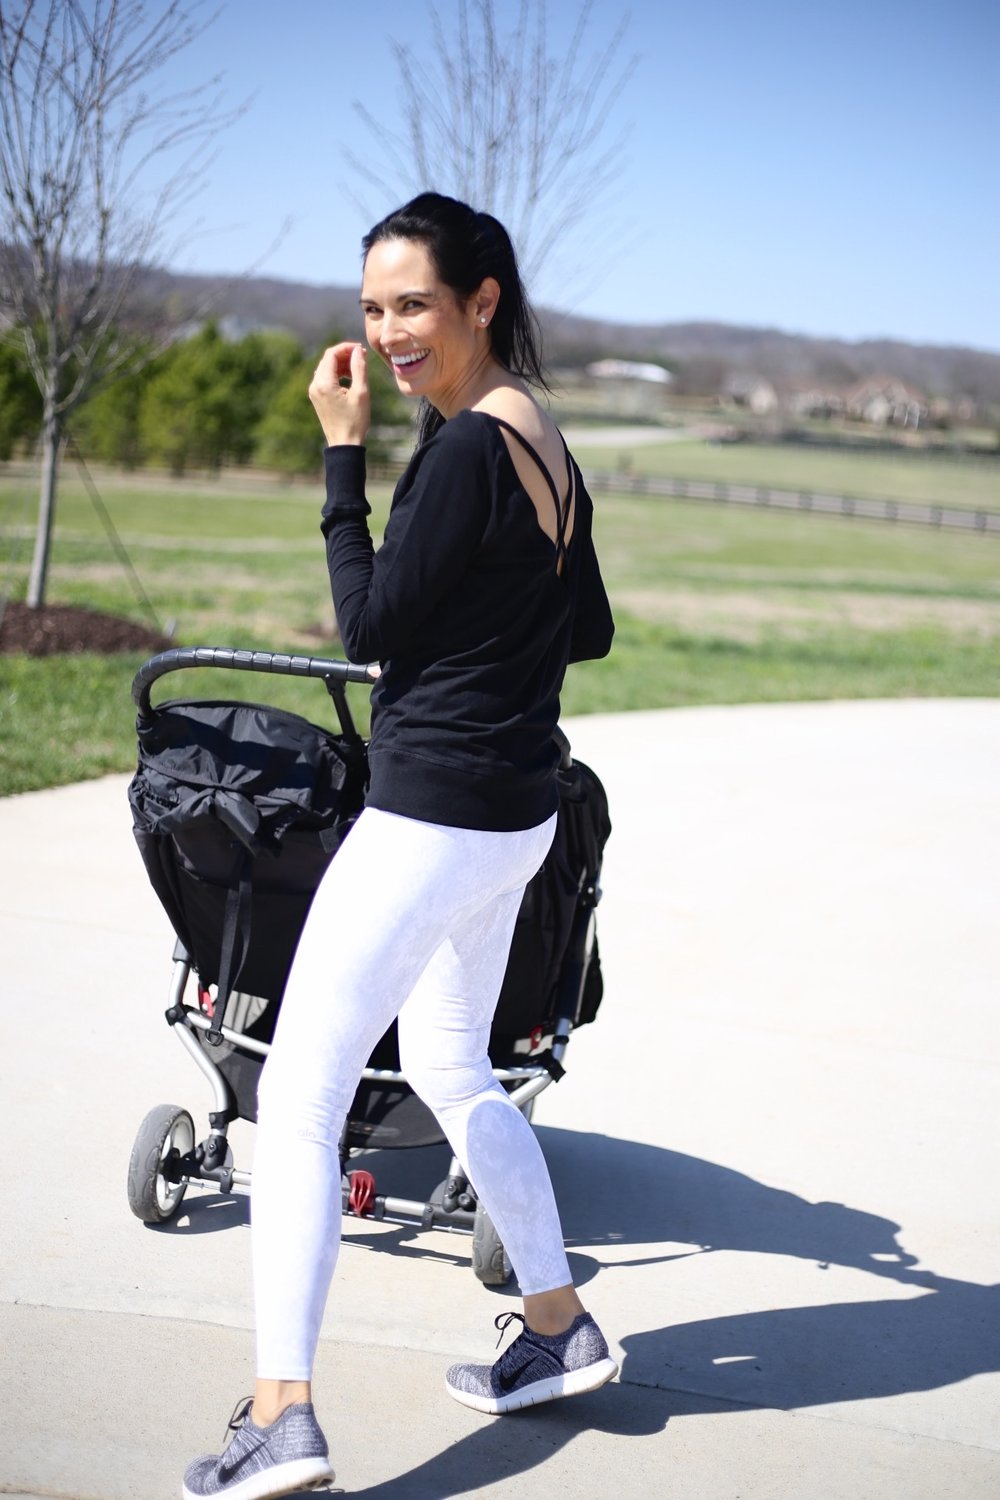 |  Alo leggings  |  Nike sneakers  | Zella  top similar  |  double stroller  | image : Sydney Clawson |